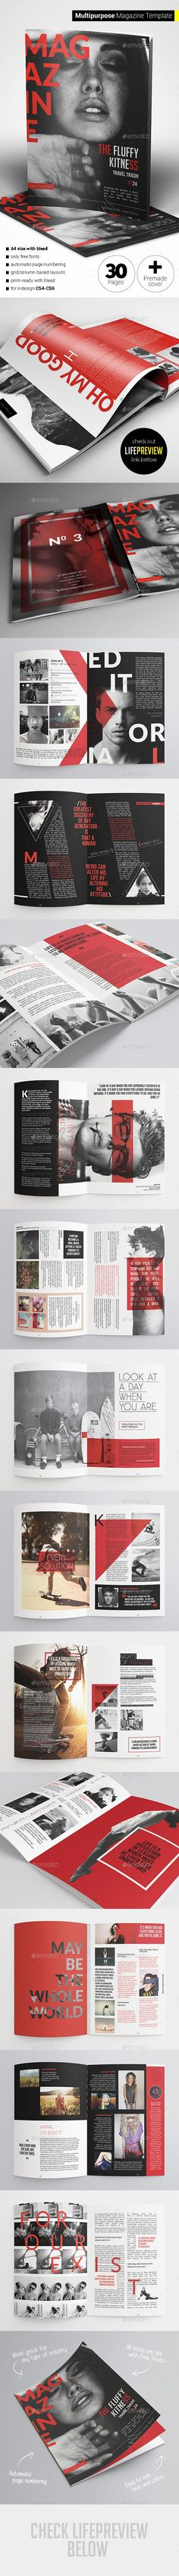 30 Pages Multipurpose Magazine Template #design Download: http://graphicriver.net/item/30-pages-multipurpose-magazine/11881489?ref=ksioks